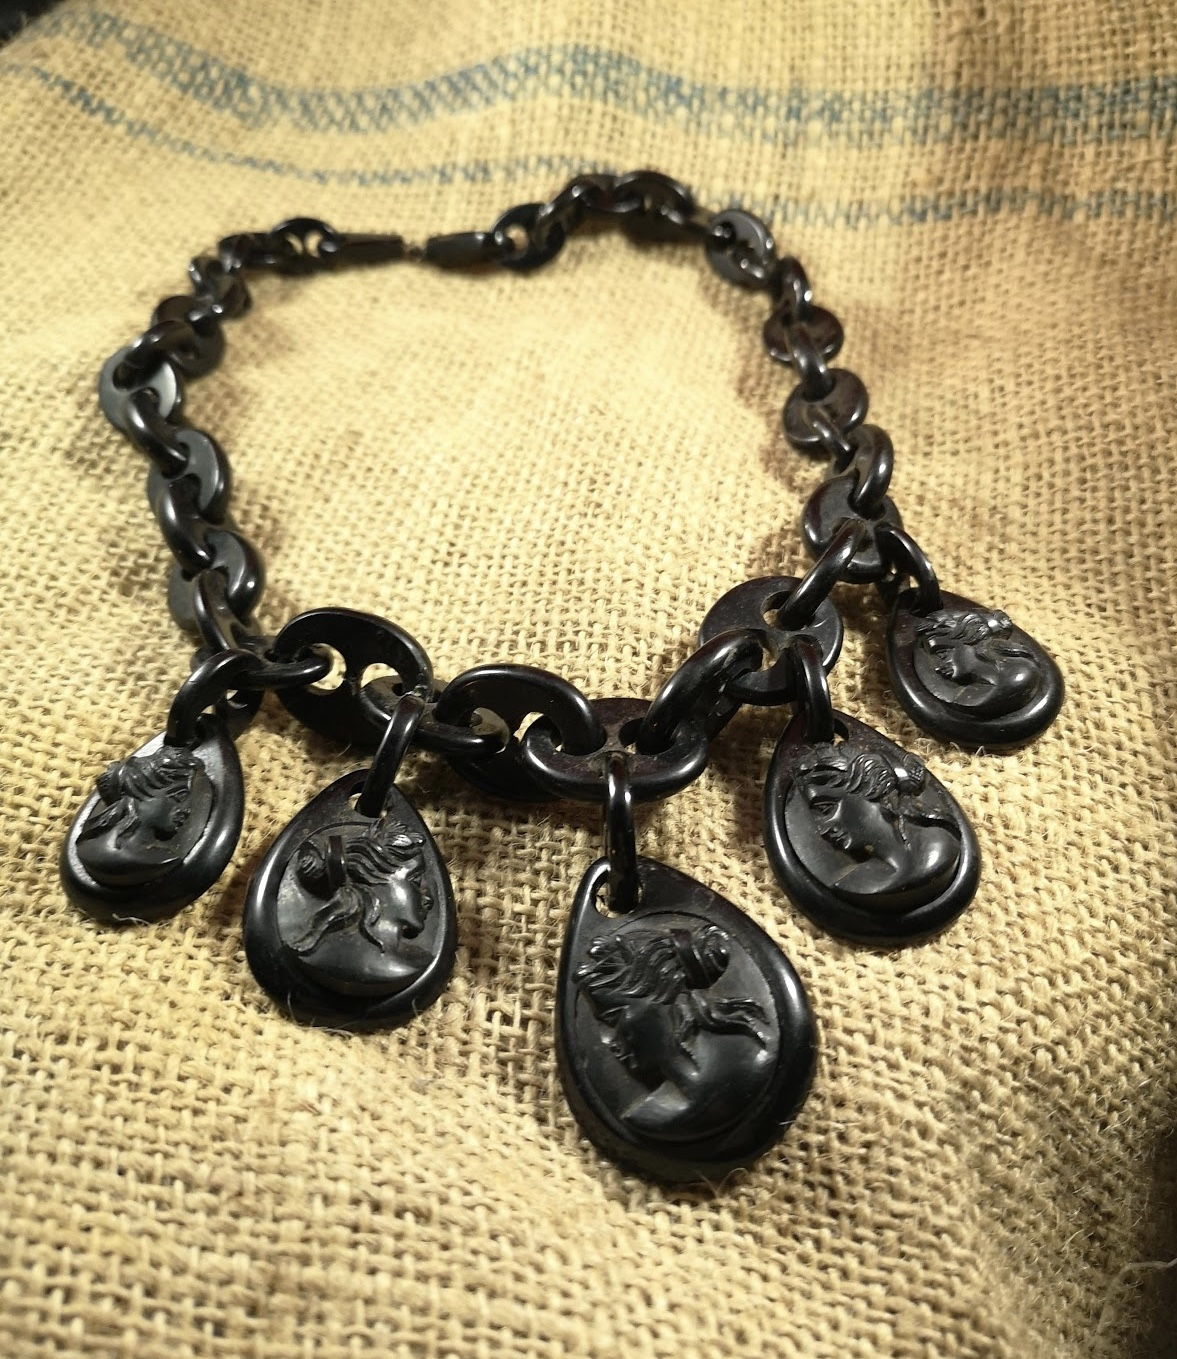 Antique Whitby Jet Collars